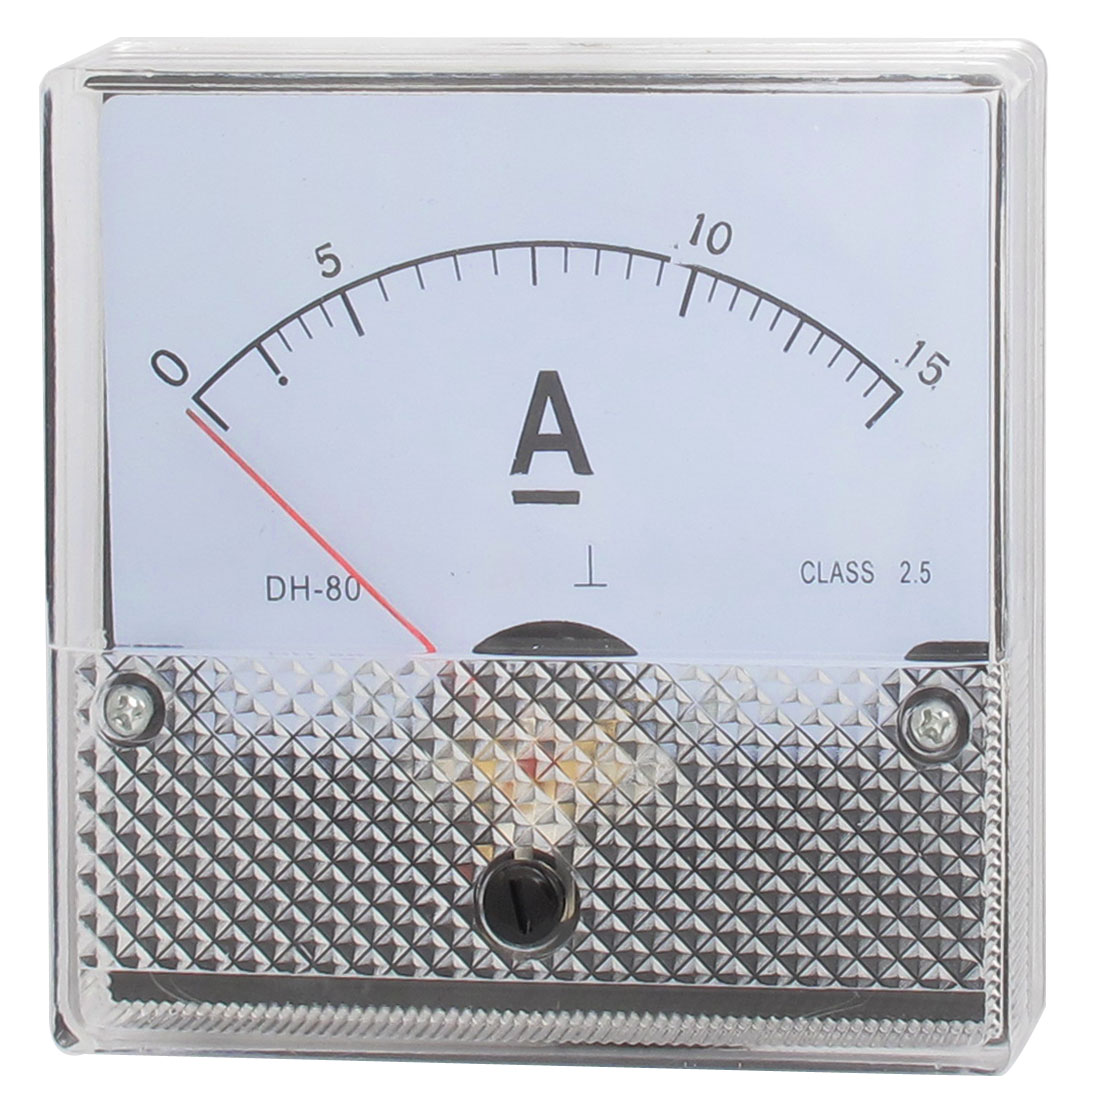 DH-80 DC 0 to 15Amp Class 2.5 Accuracy Clear Square Panel Mounted Analog Ammeter Ampere Meter